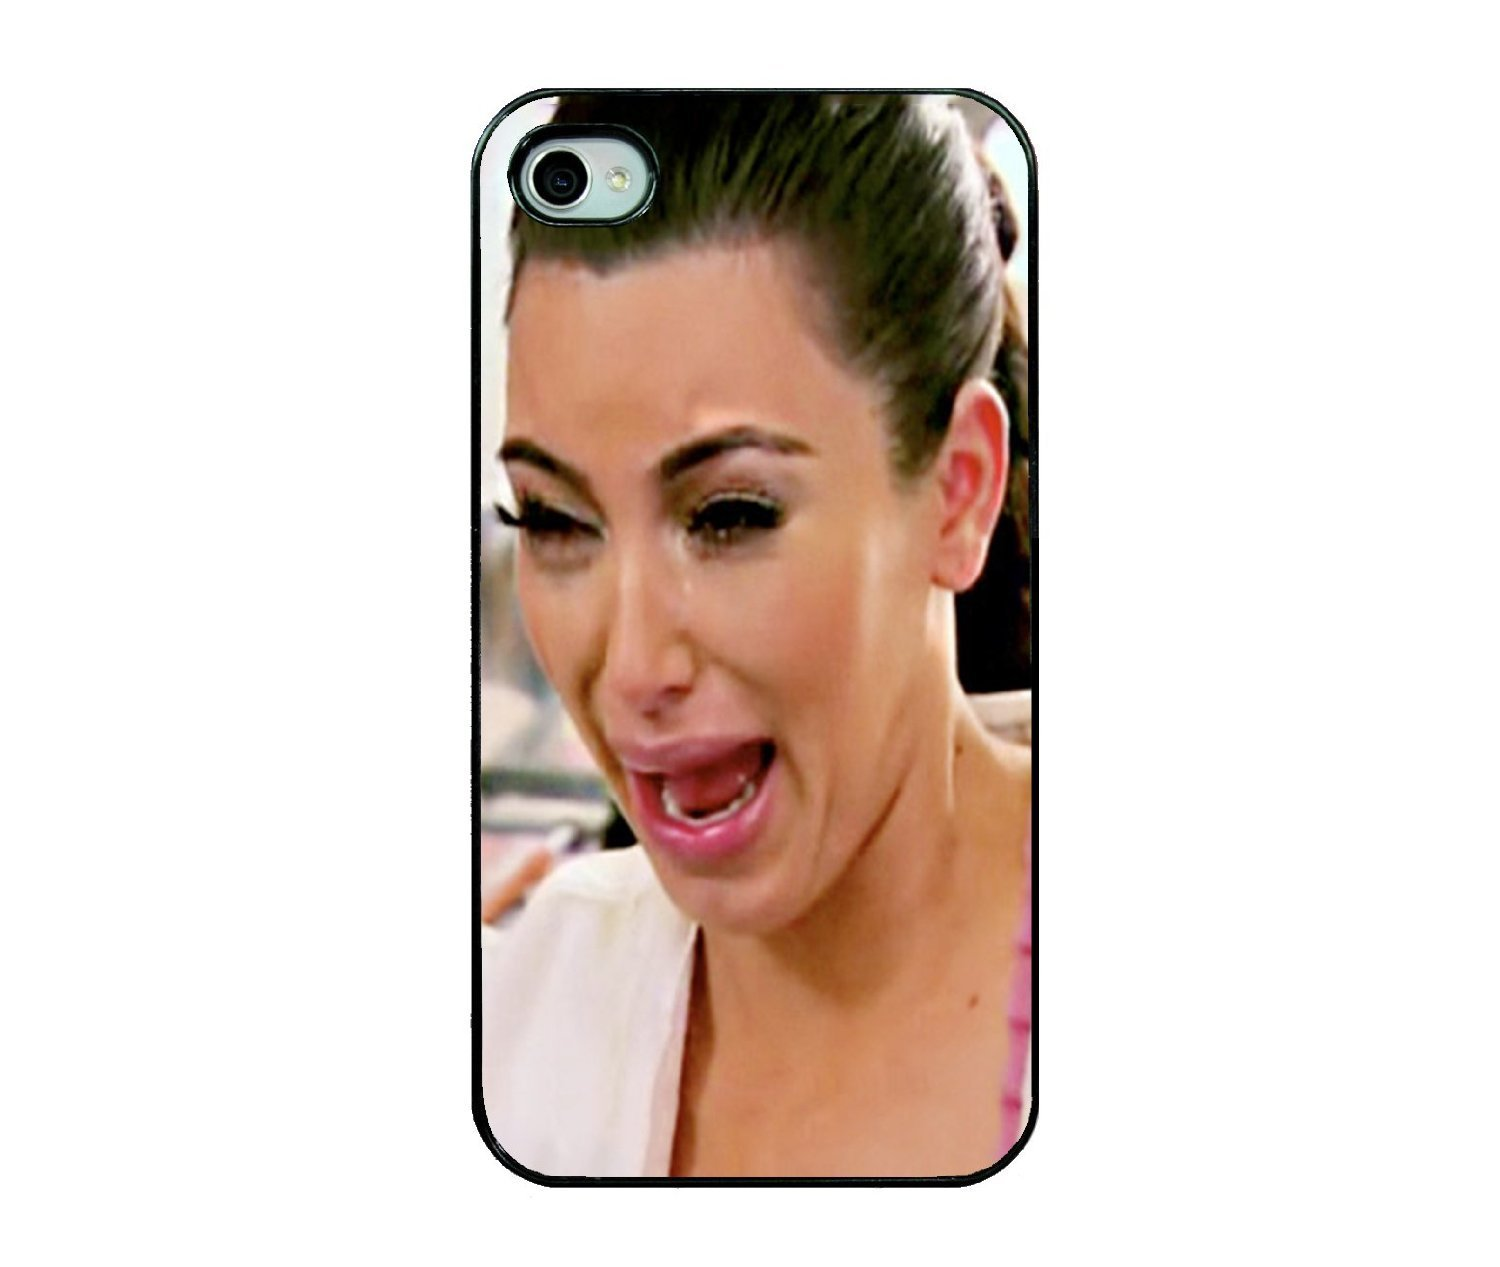 Amazon.com: Kim Kardashian Crying IPhone Case - IPhone 5 Case - Black: Cell Phones & Accessories